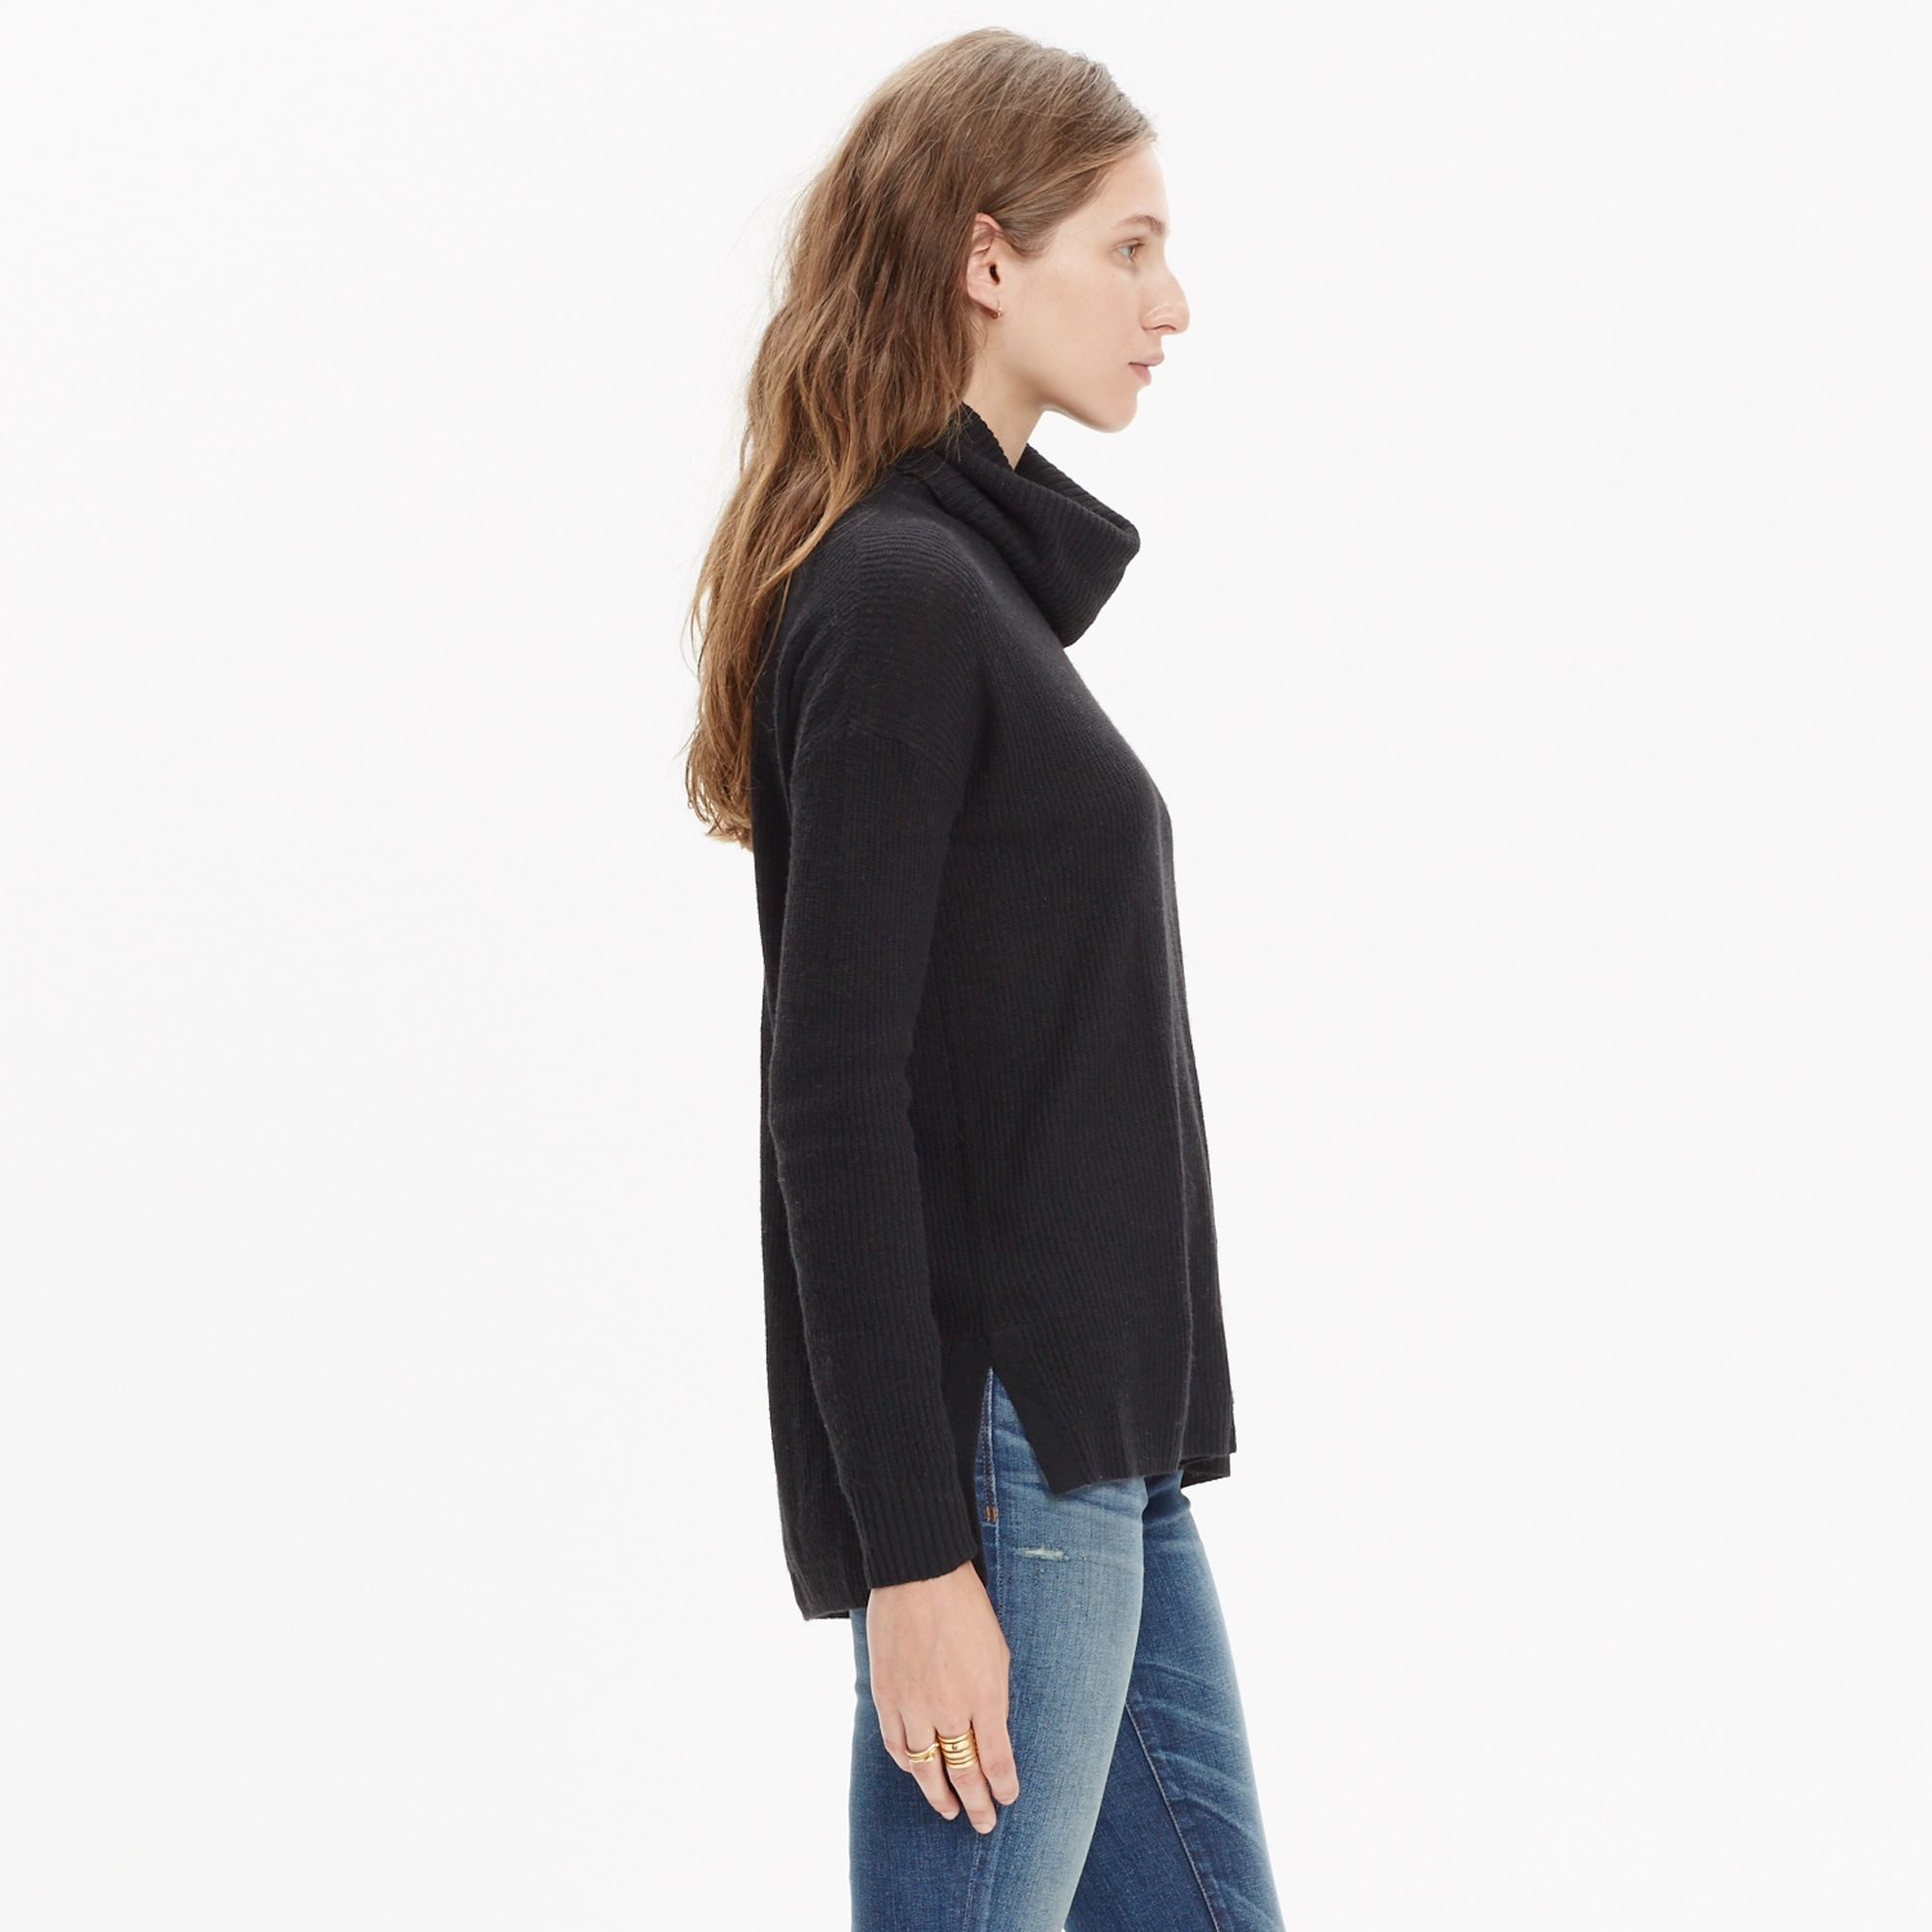 Madewell Ribbed Turtleneck Sweater in Black | Lyst